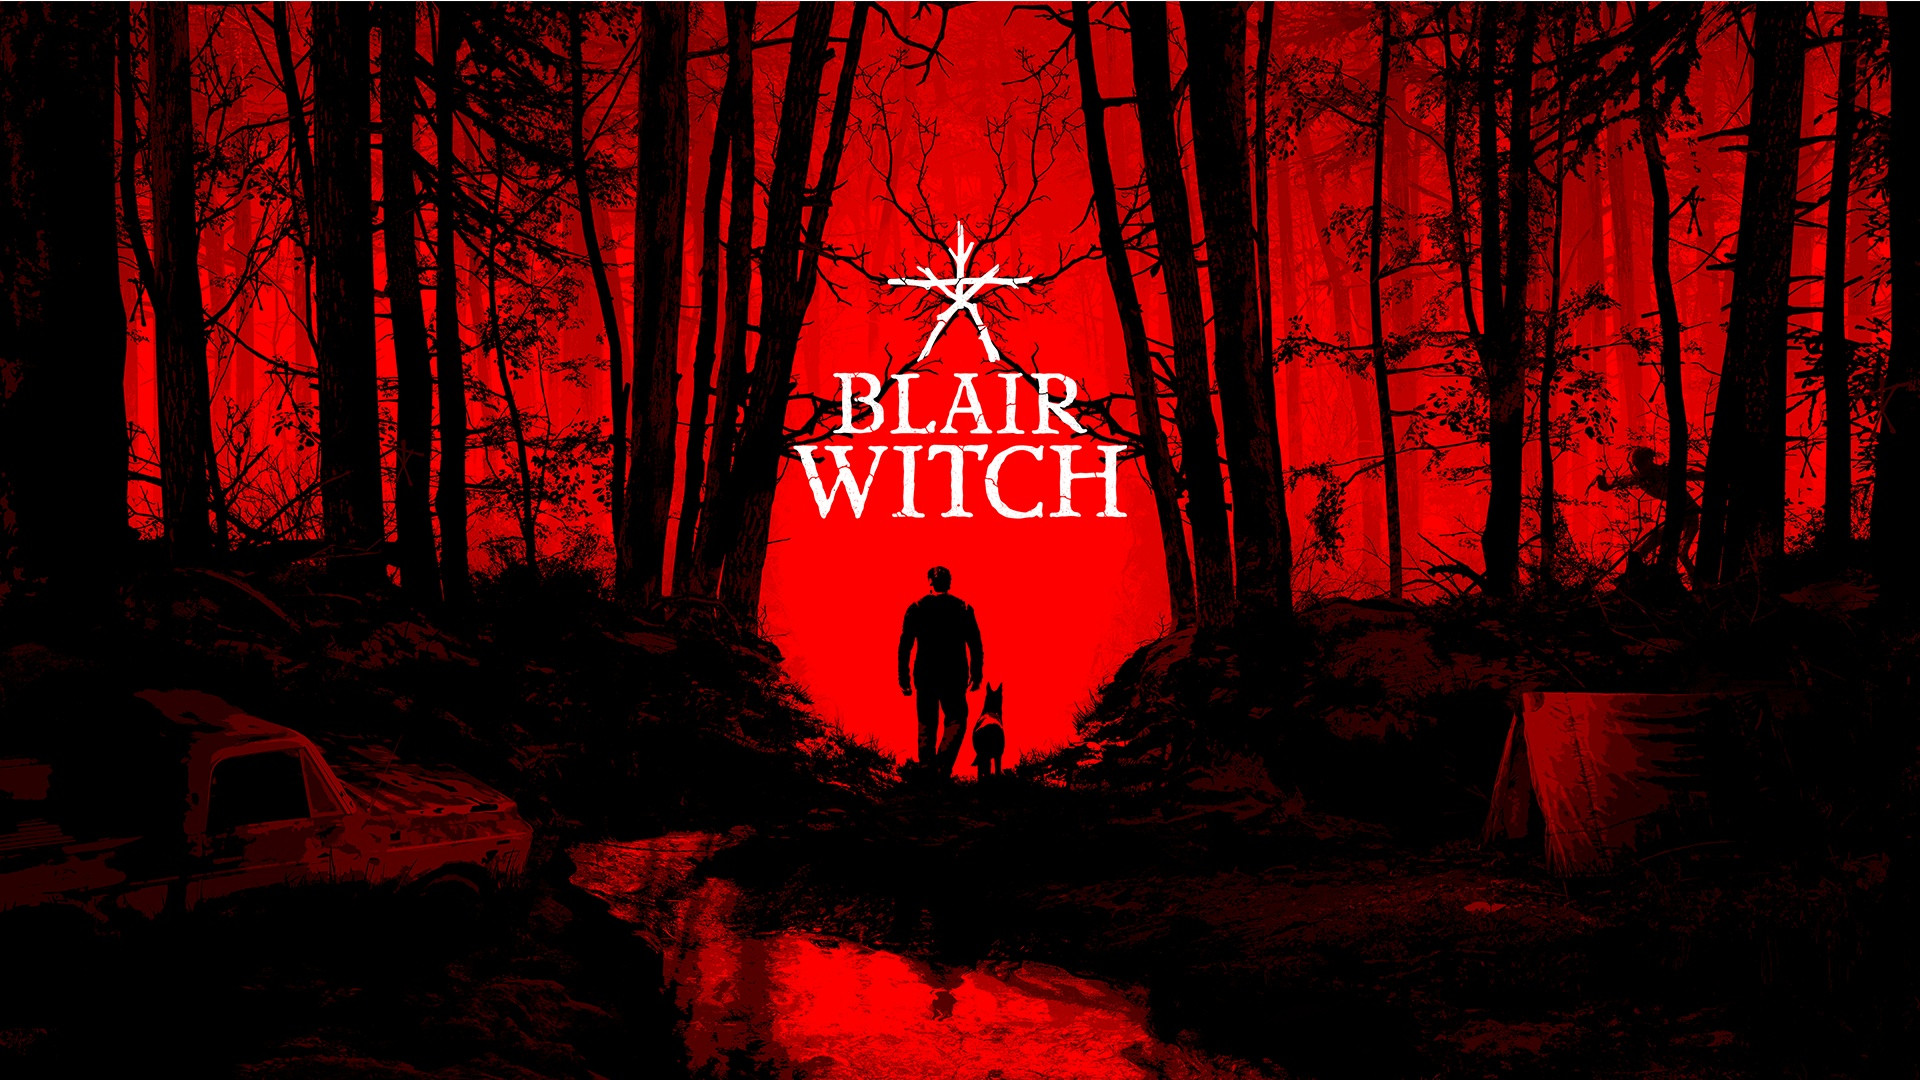 Blair Witch: How You Play Matters